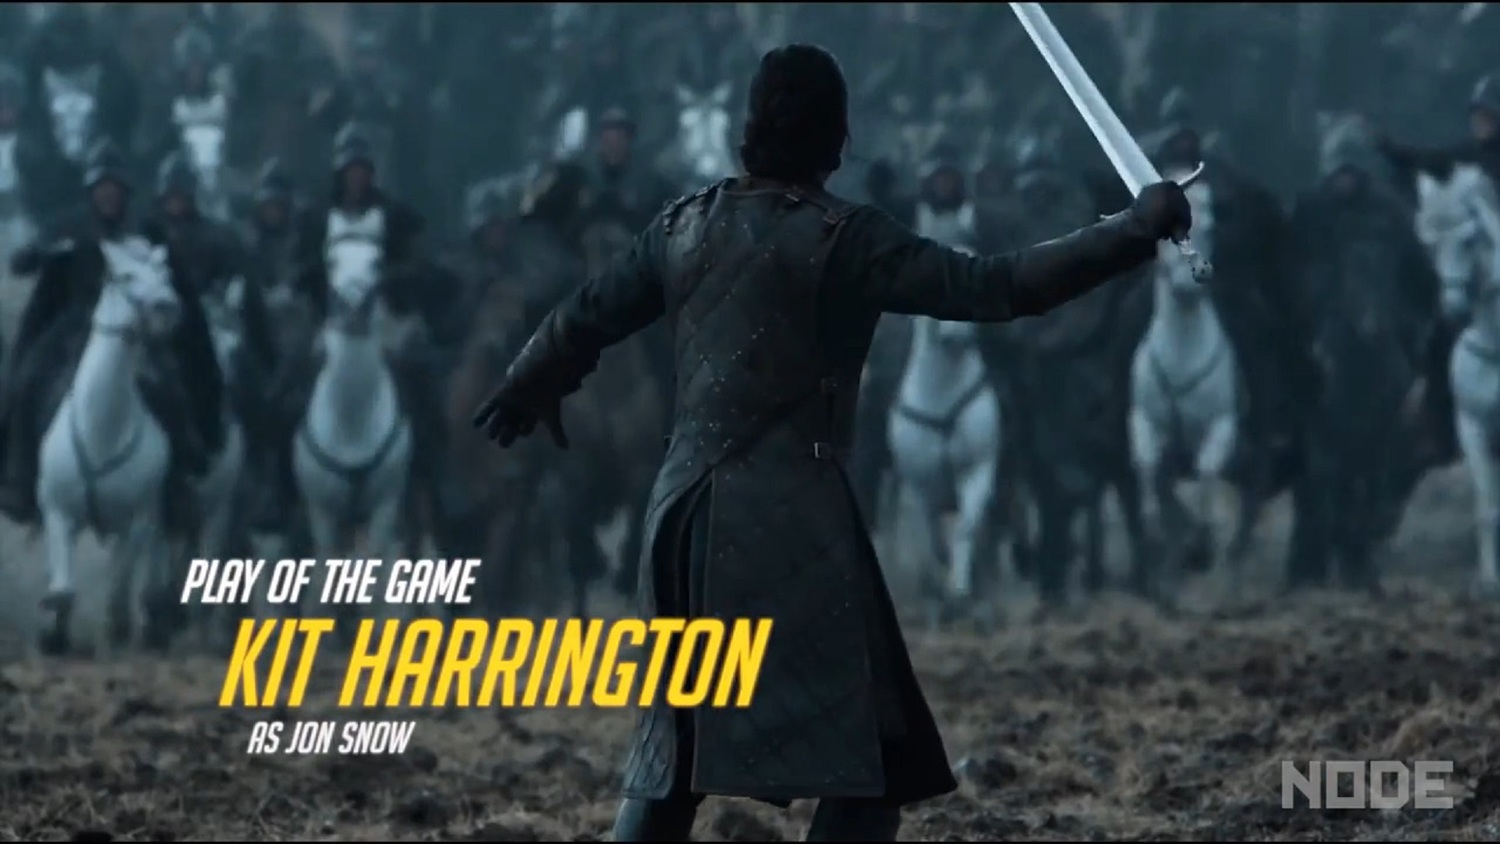 Jon Snow's Play of the Game